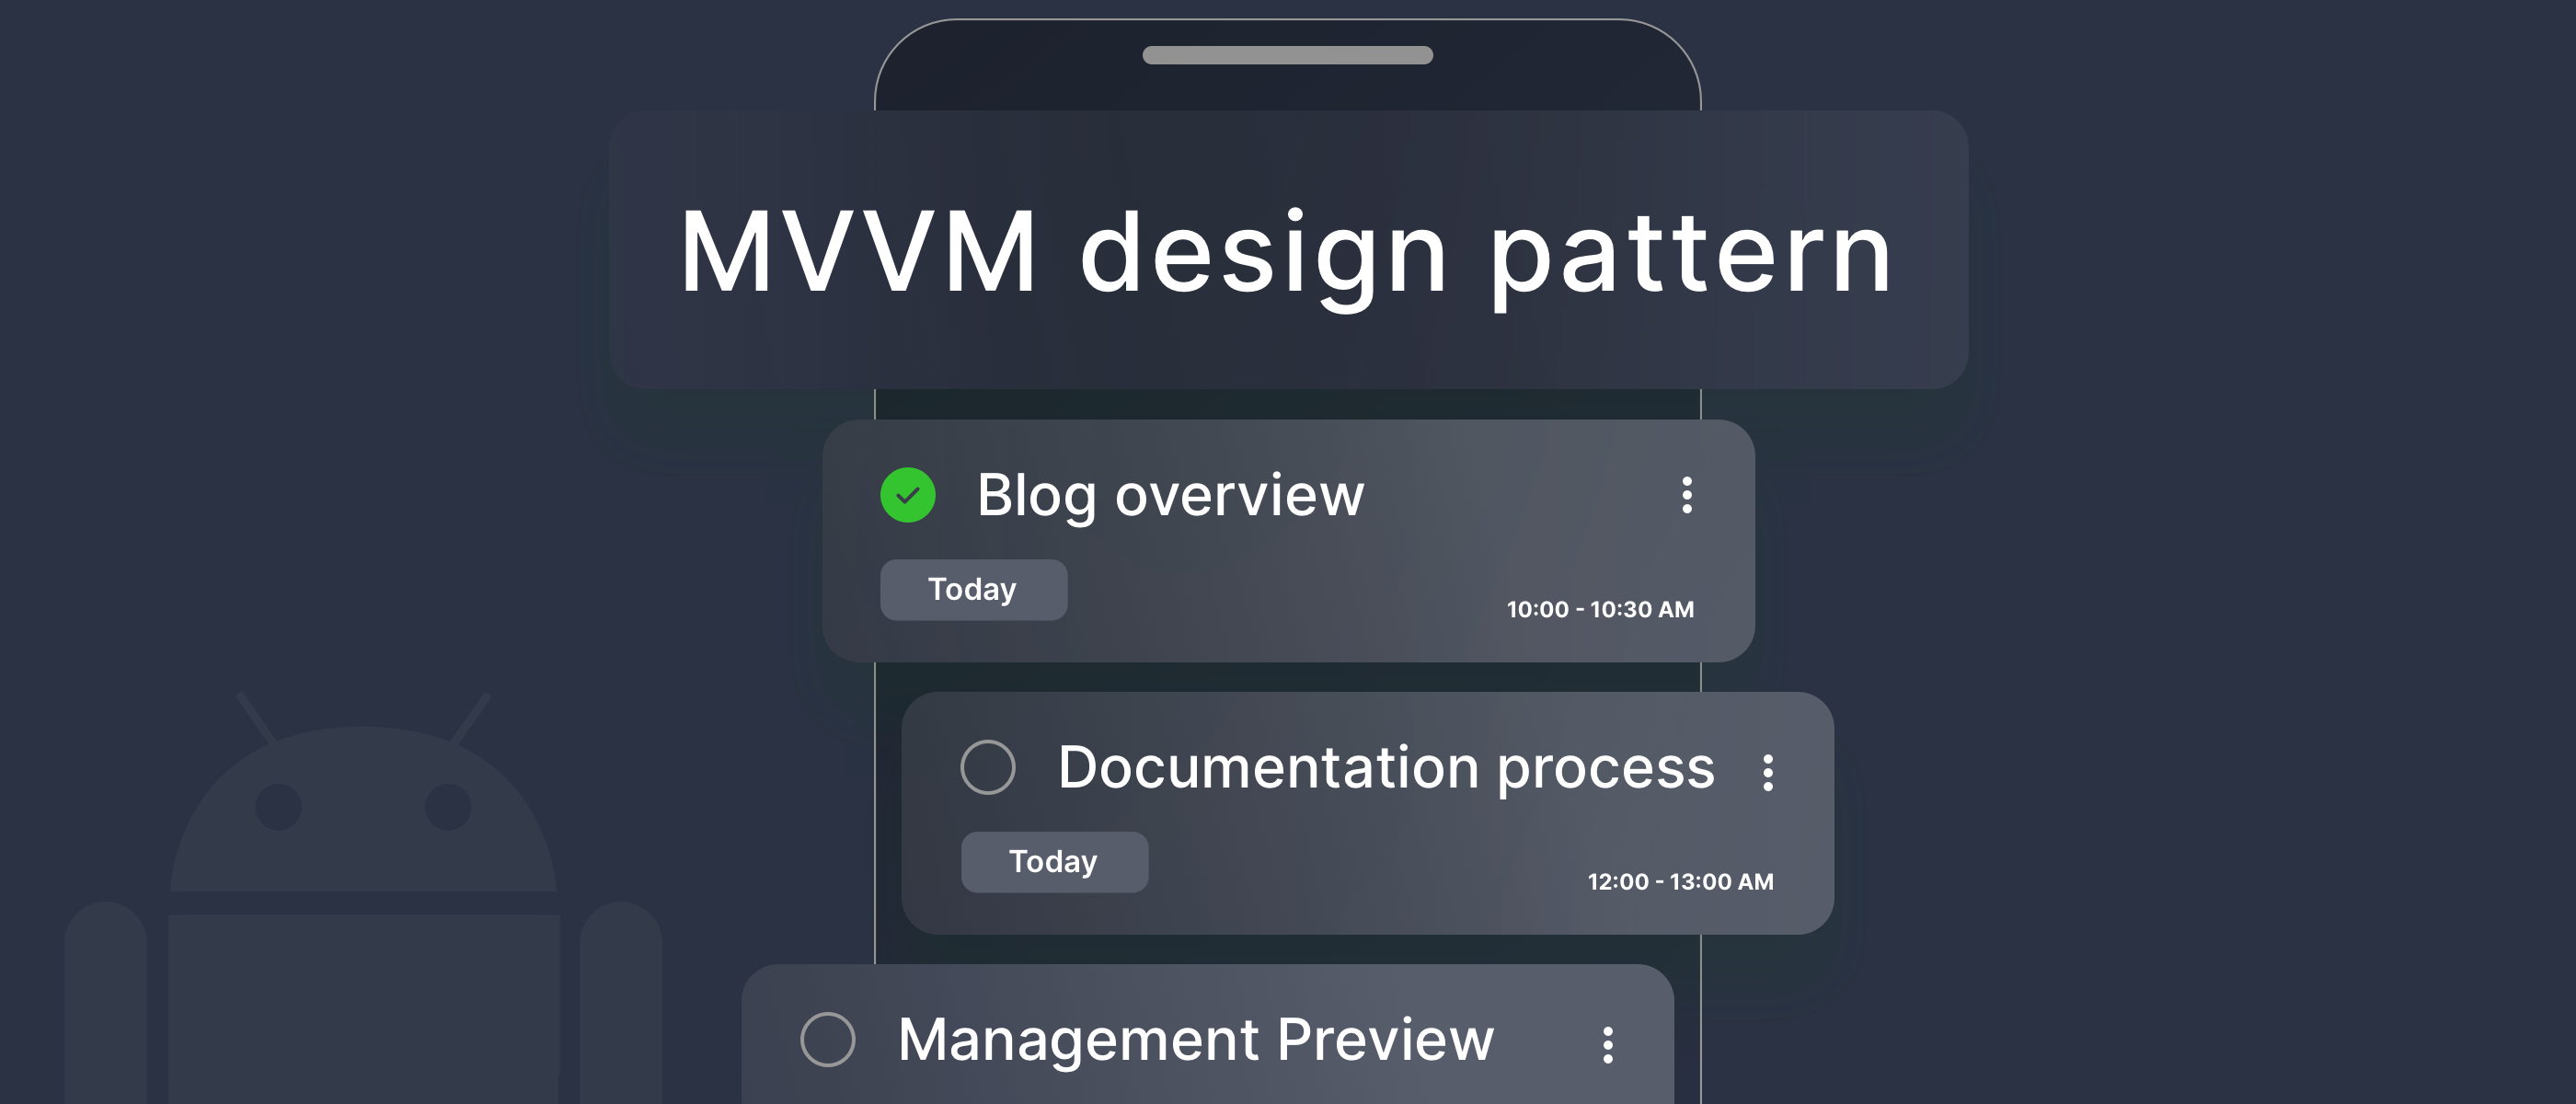 [Tutorial] Part 1 — VIPER design pattern: what, when, why and how